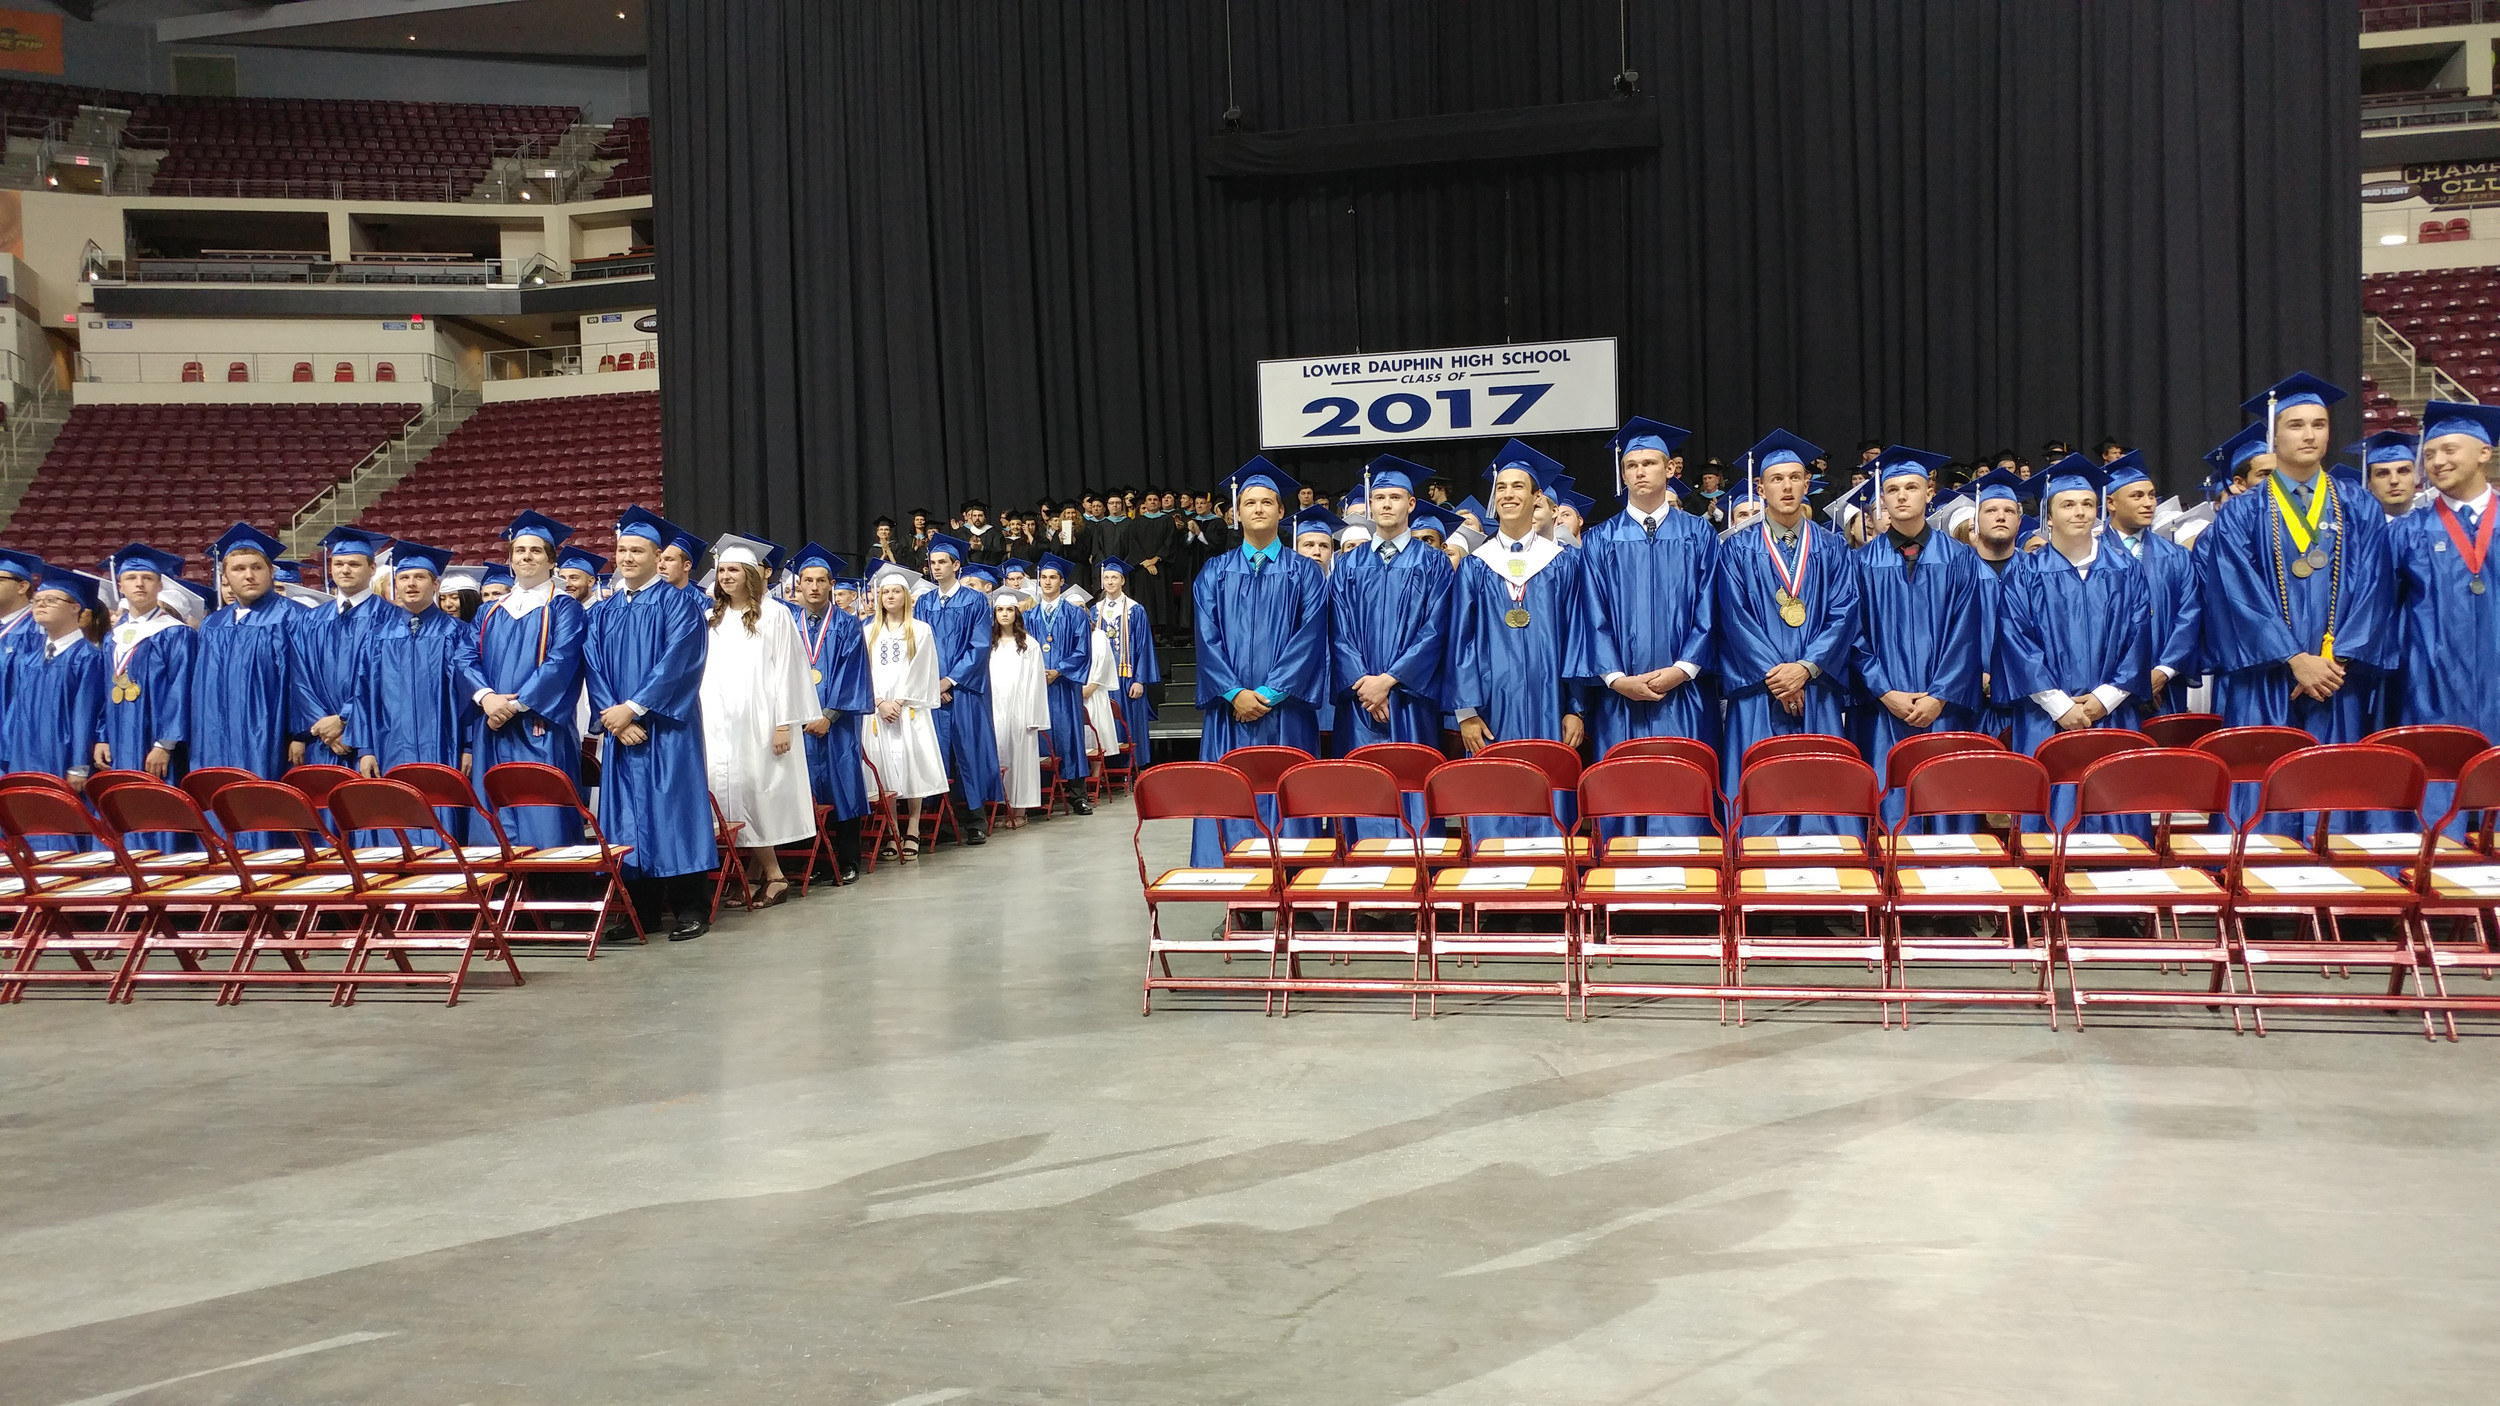 The Lower Dauphin Class of 2017 faces the audience before taking their seats in the Giant Center.